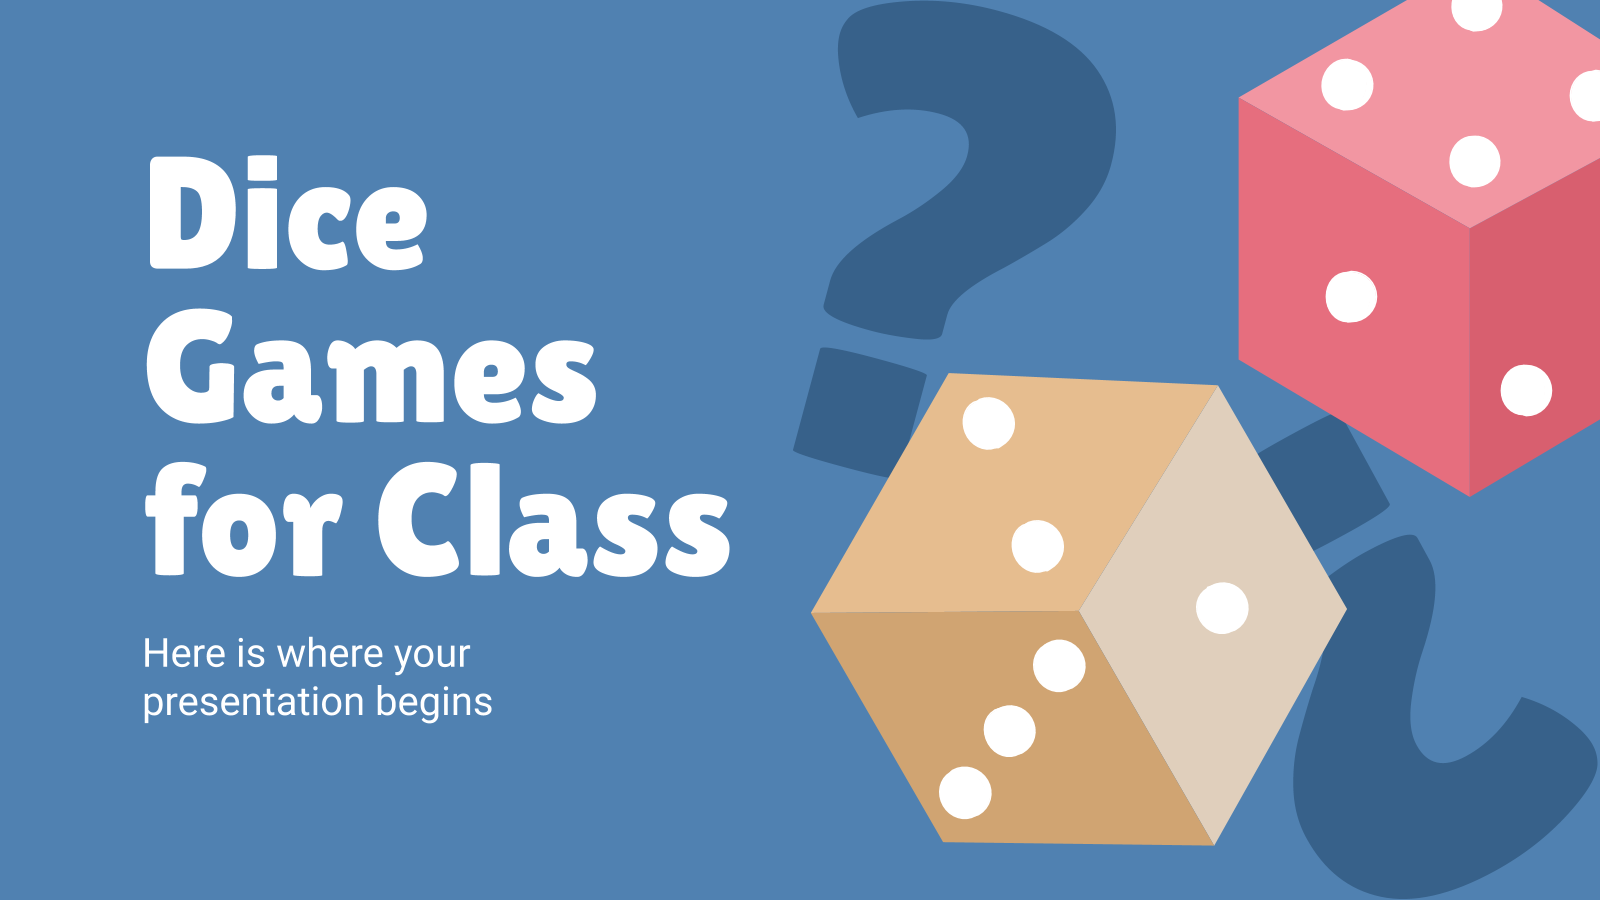 Dice Games for Class presentation template